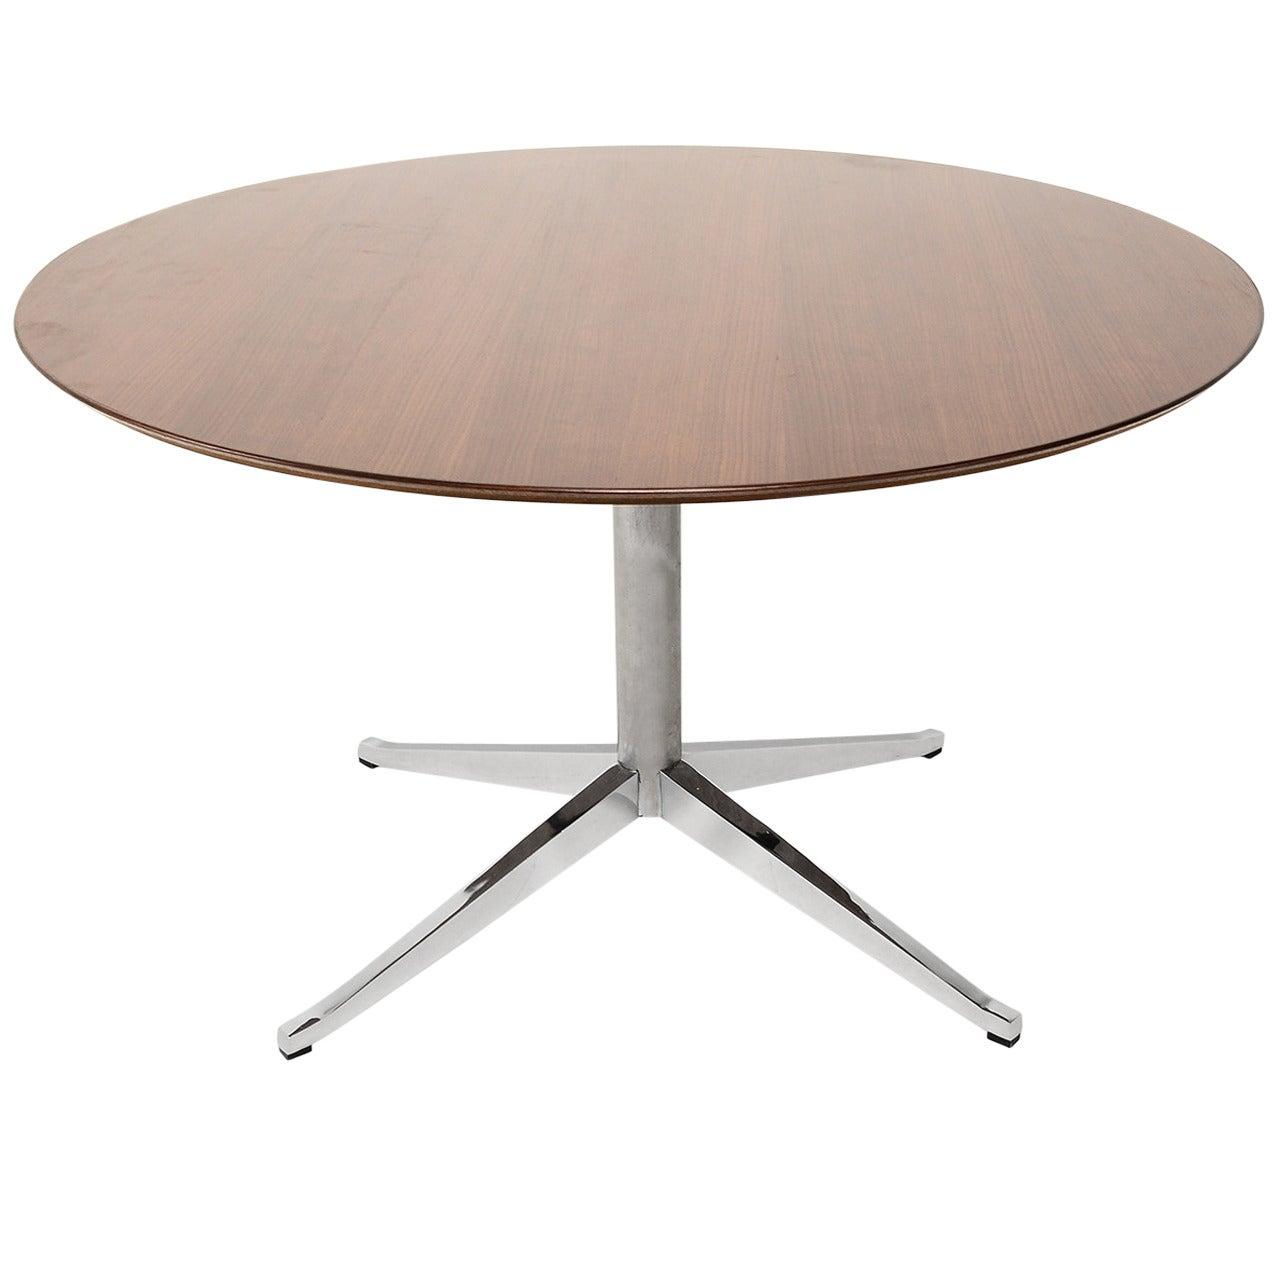 Knoll Round Conference or Dining Table